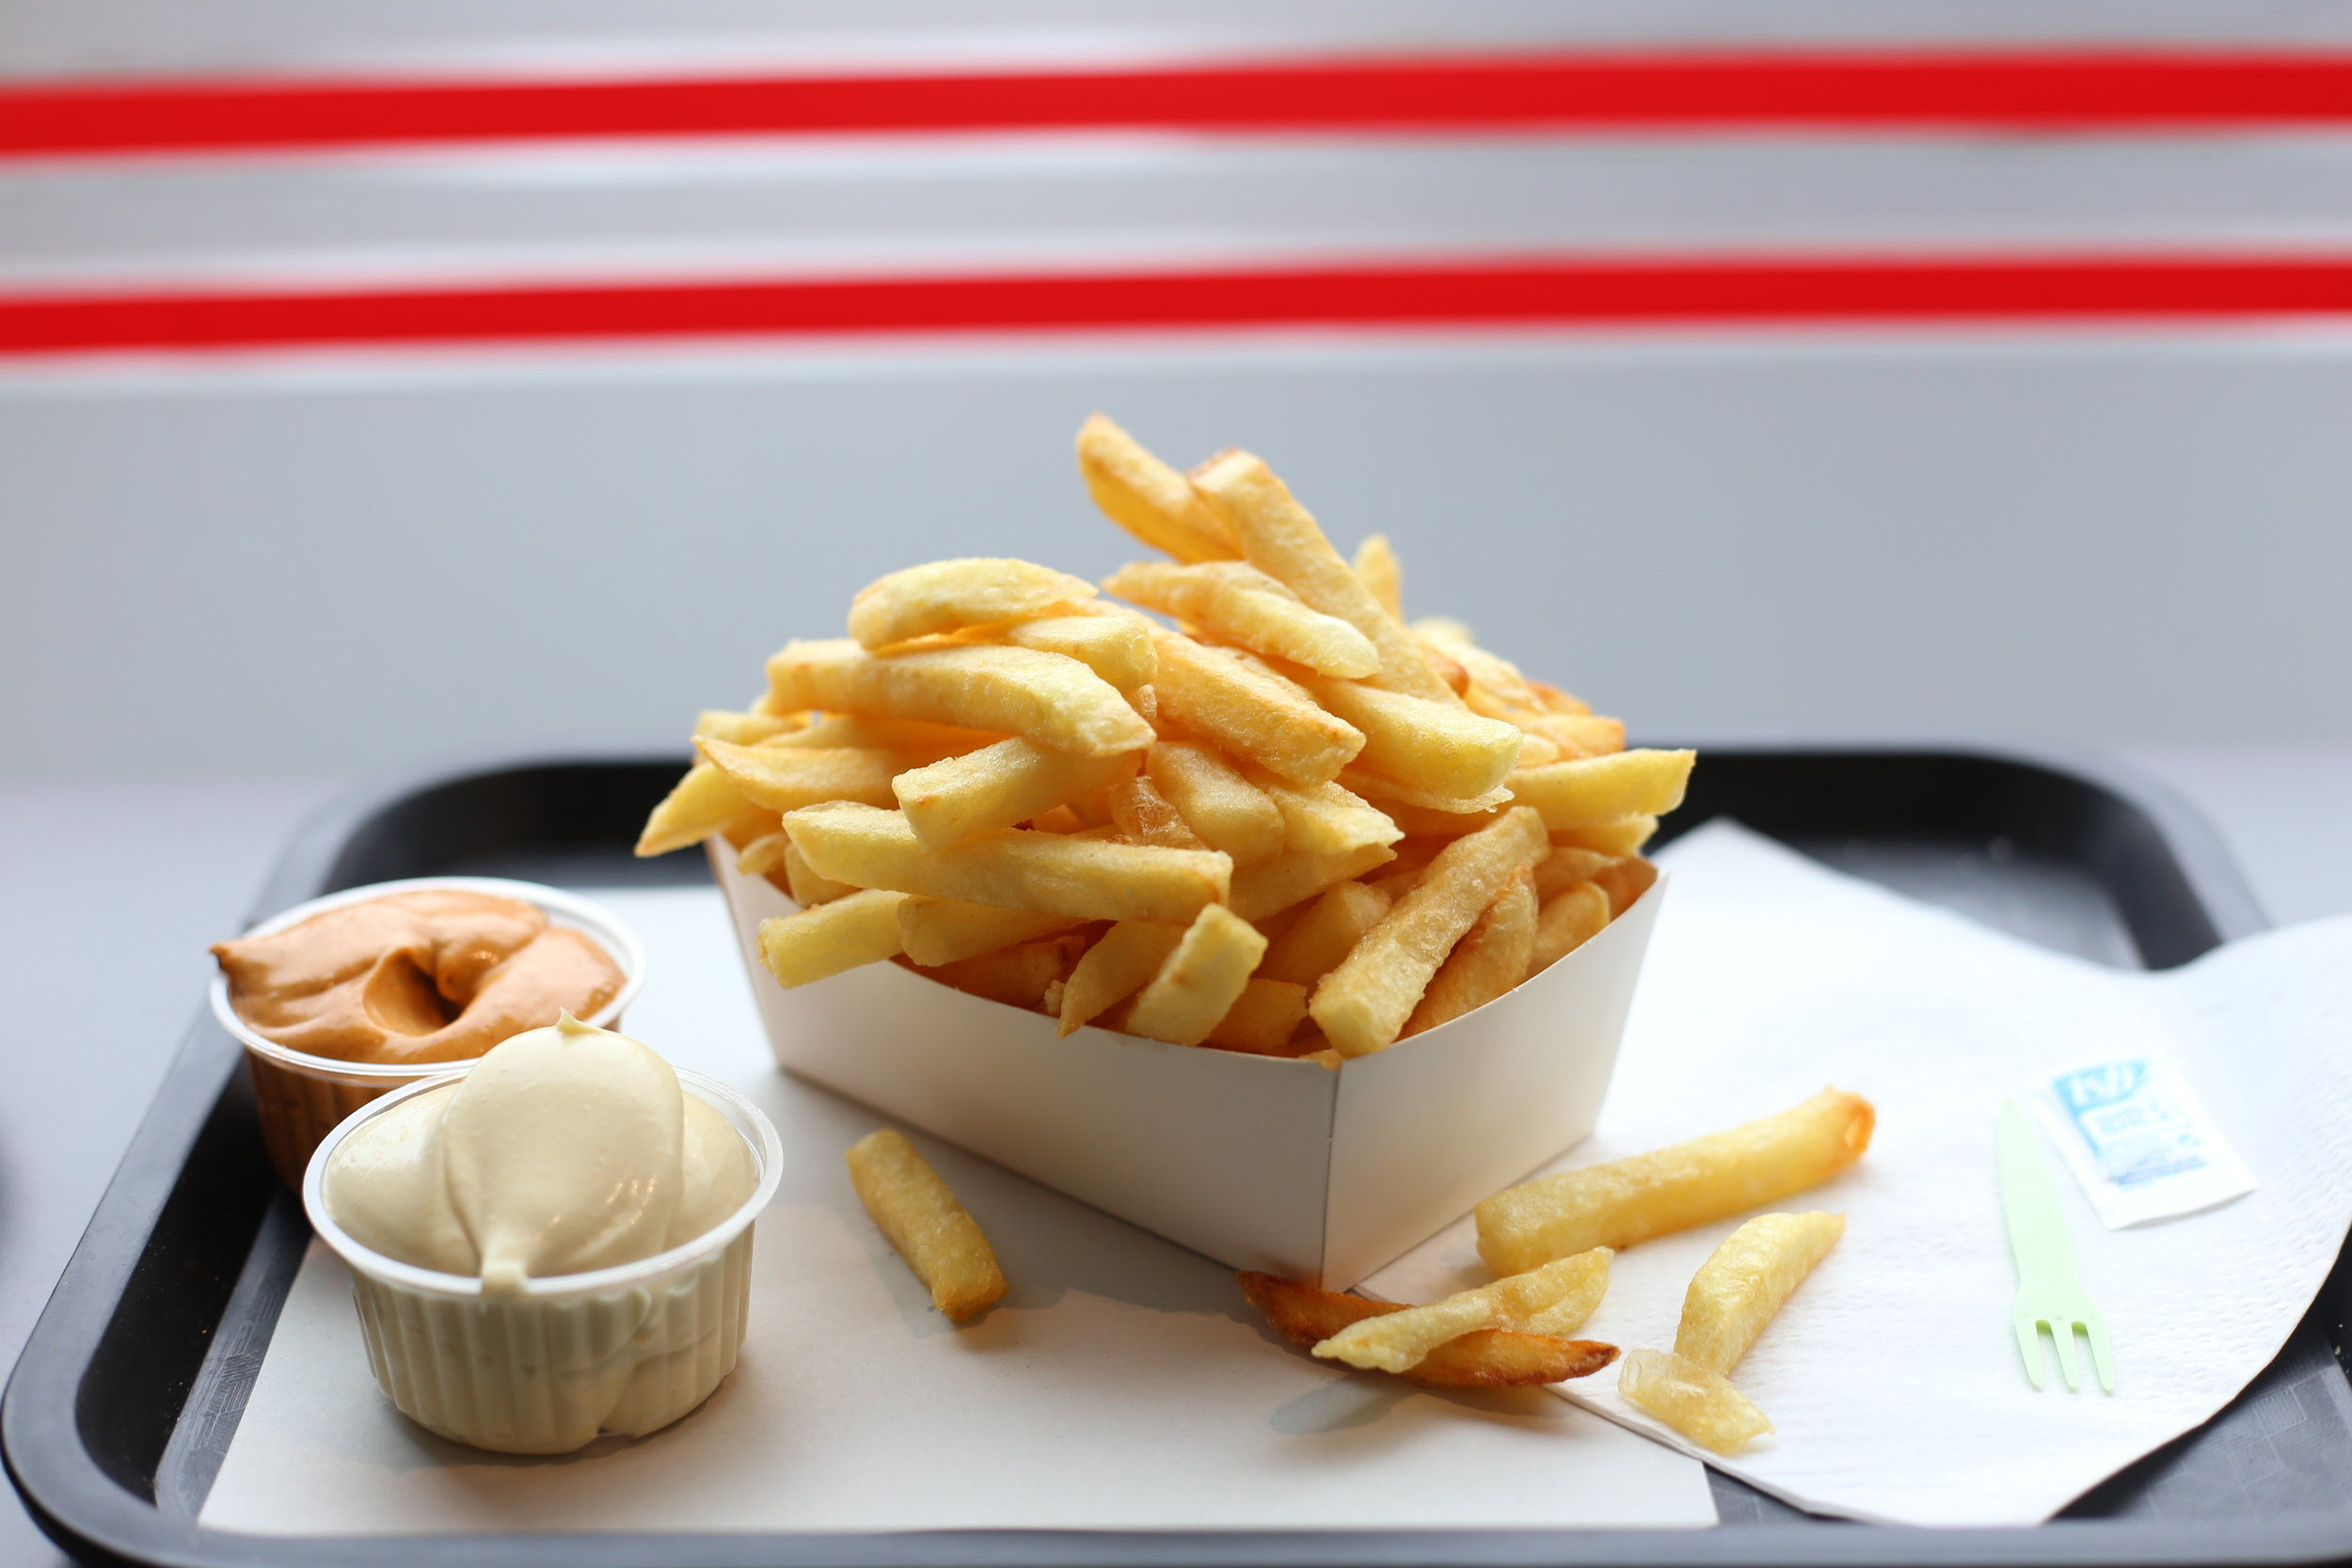 Belgian fries - twice fried, extra crunchy, perfect.